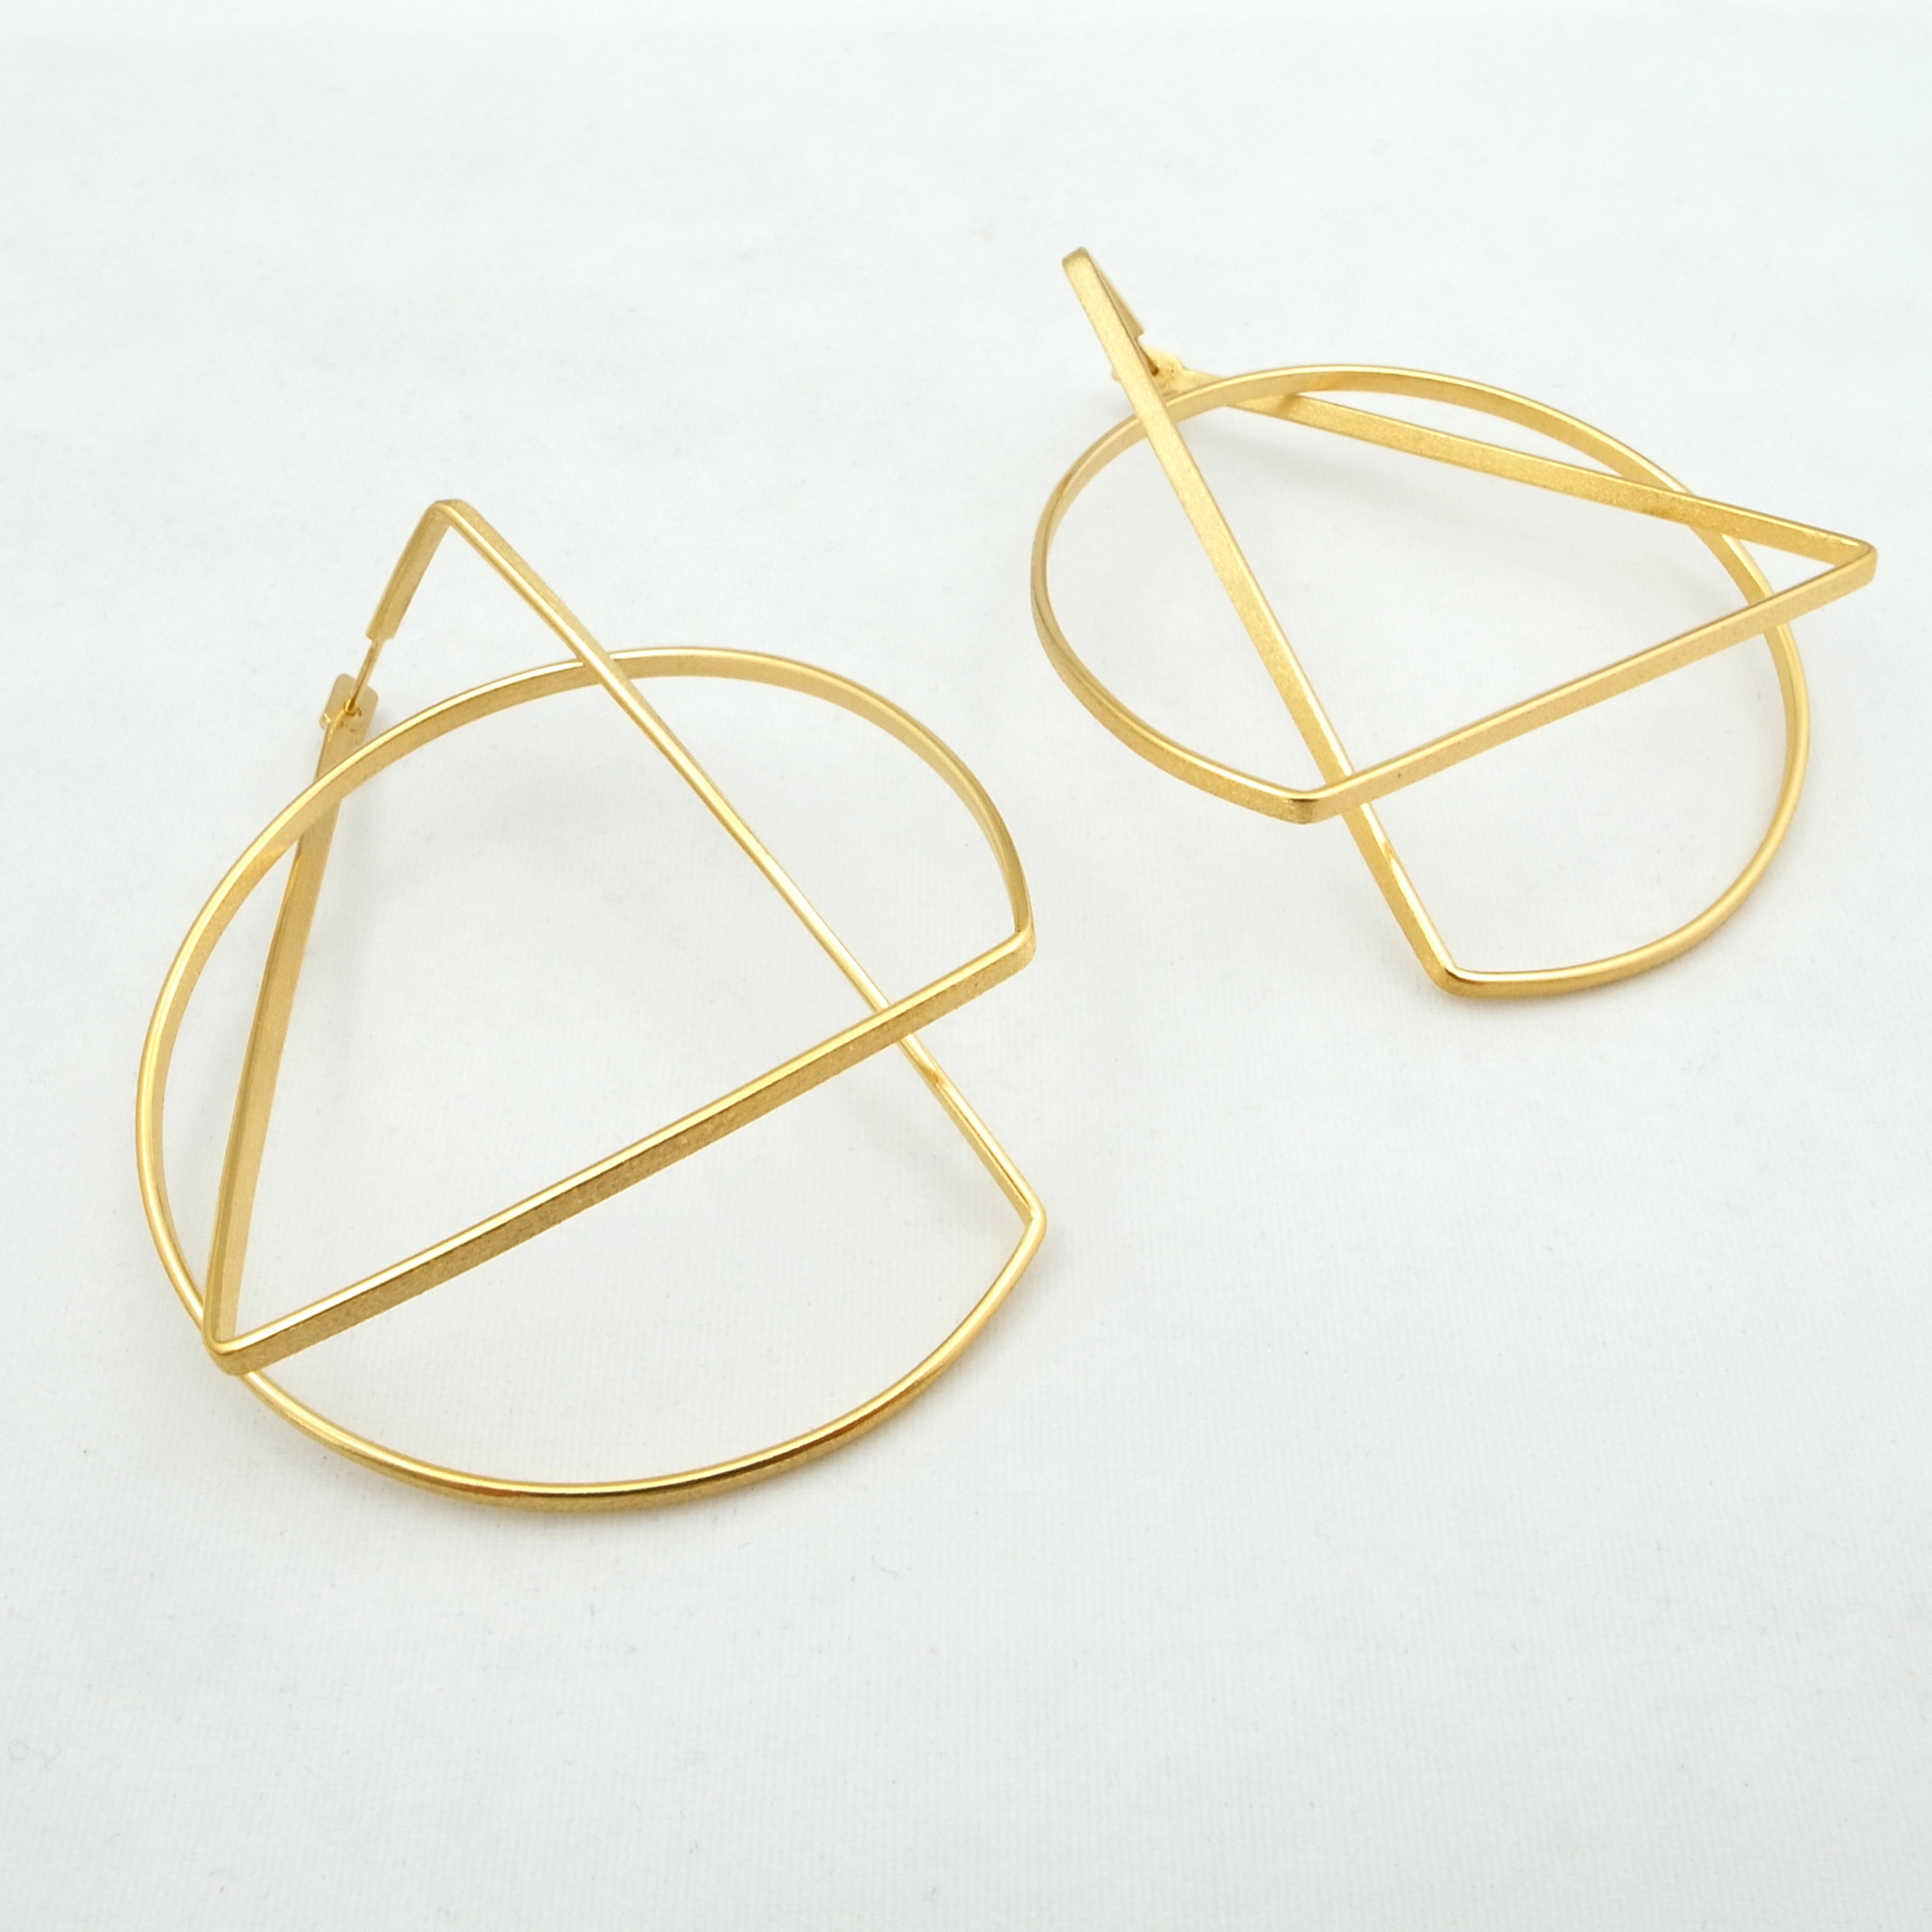 product shards gold plymouth earrings shard victoria plated gallery contemporary linear drop jewellery devon hunt sewart carol